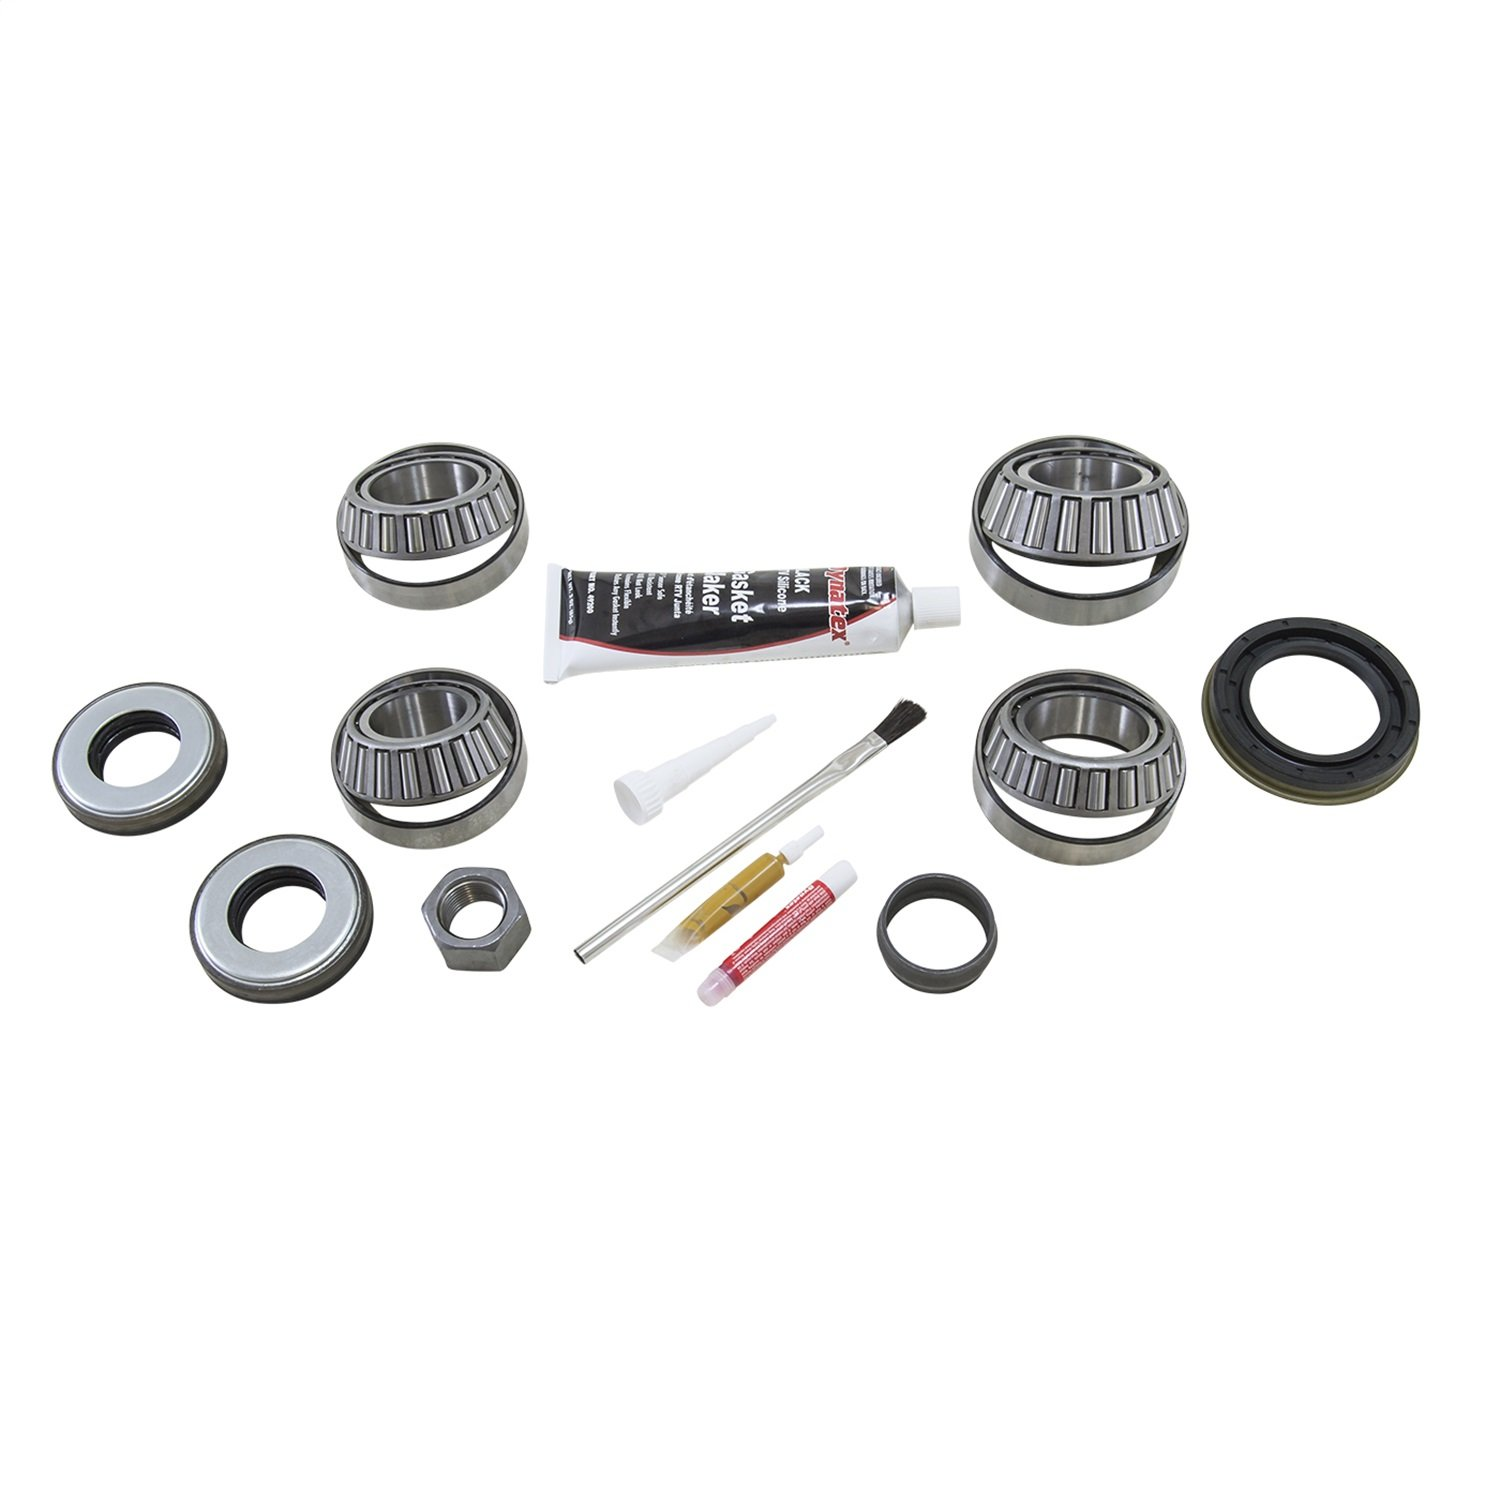 USA Standard Gear (ZBKGM9.5-B) Bearing Kit for GM 9.5 Differential by USA Standard Gear